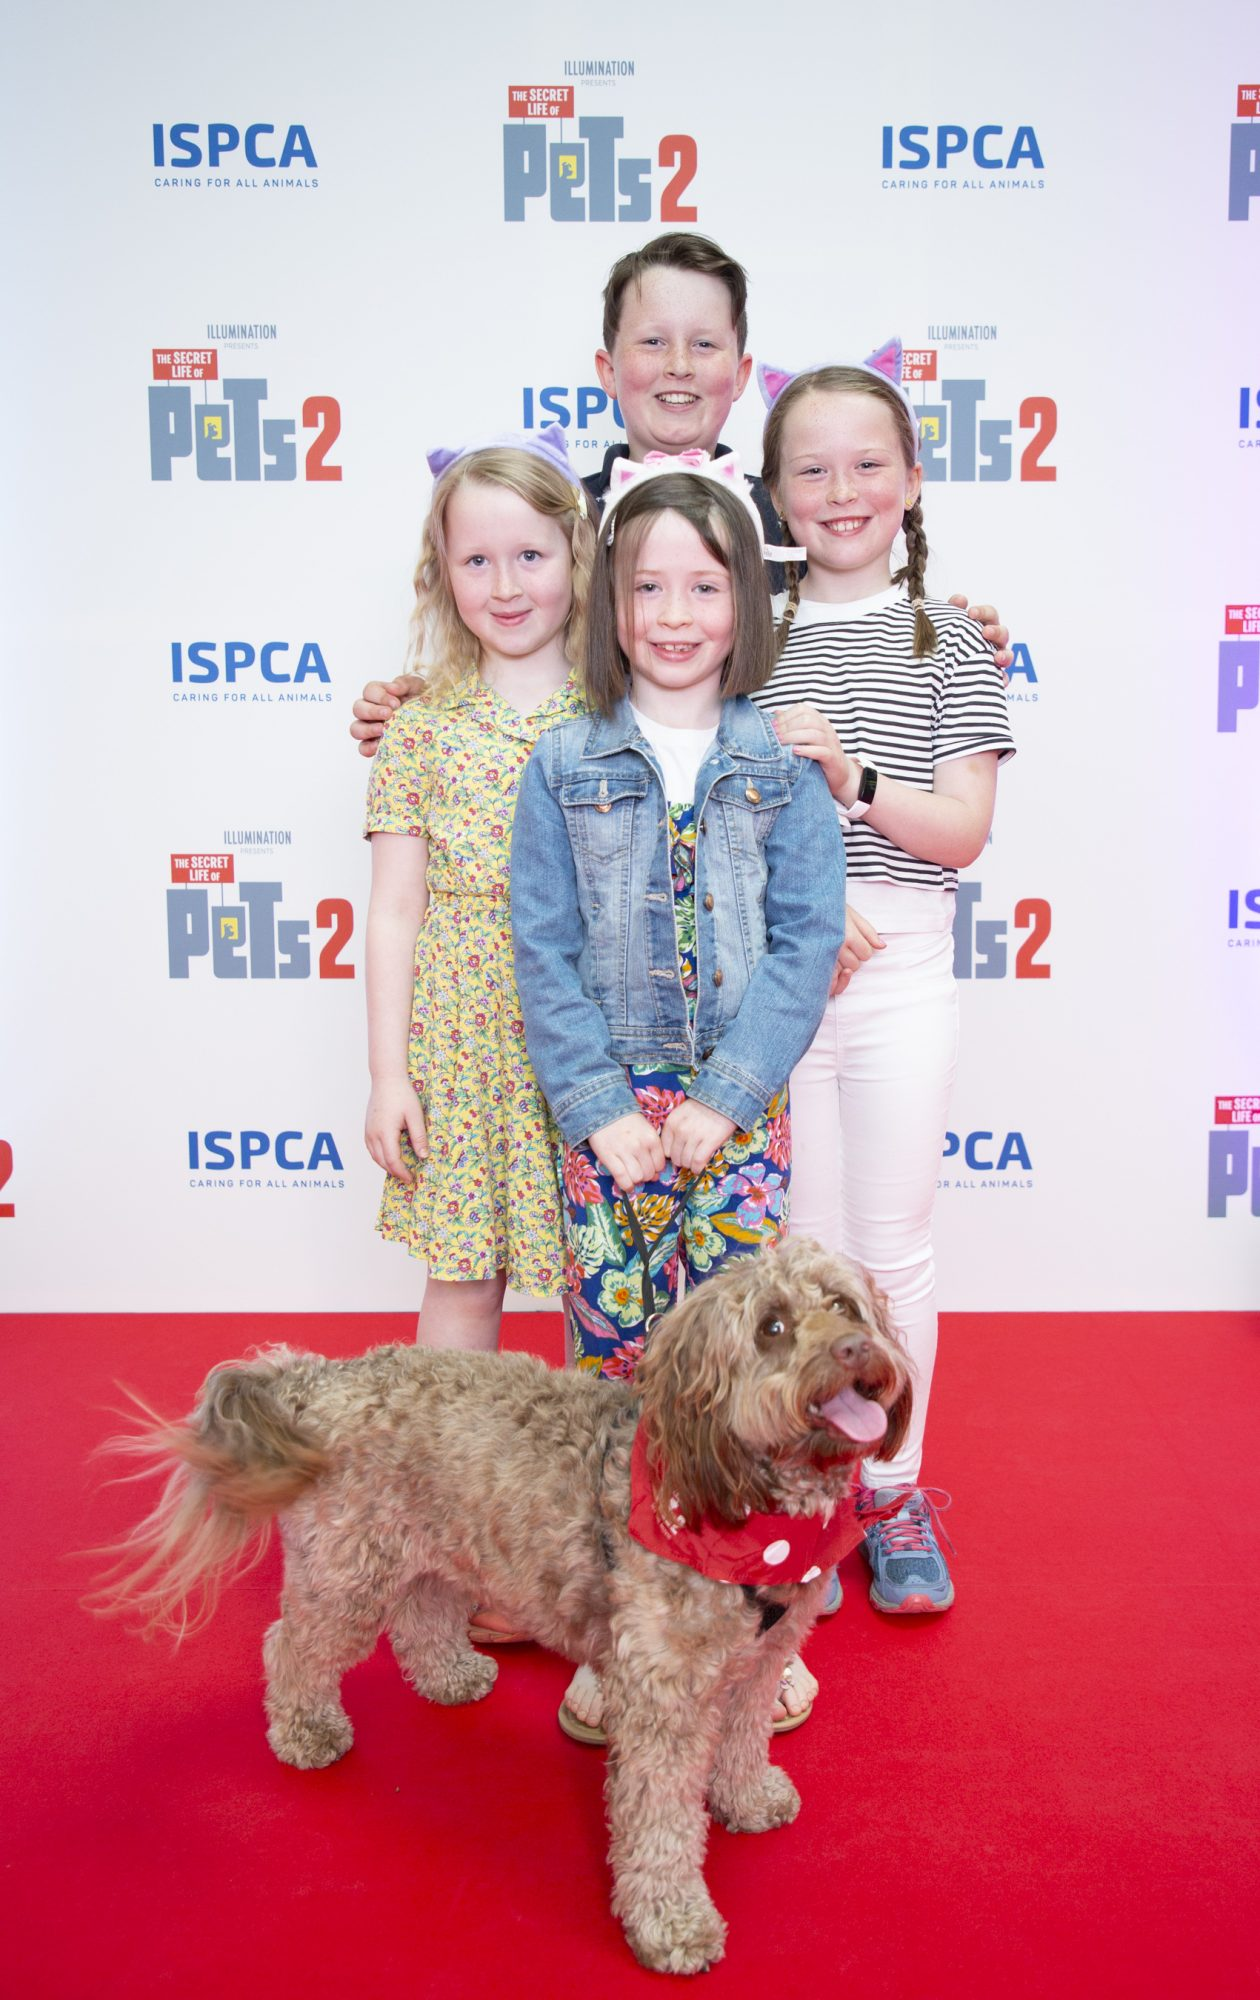 Bronagh 8 Tadhg 10 Raghnaid 9 & Blathnaid Griffin 6 with dog Murphy  pictured at the Irish premiere screening of The Secret Life of Pets 2 at Odeon Point Square, Dublin hosted by Universal Pictures in association with the ISPCA. The Secret Life of Pets 2 is in cinemas from Friday May 24th. Photo: Anthony Woods